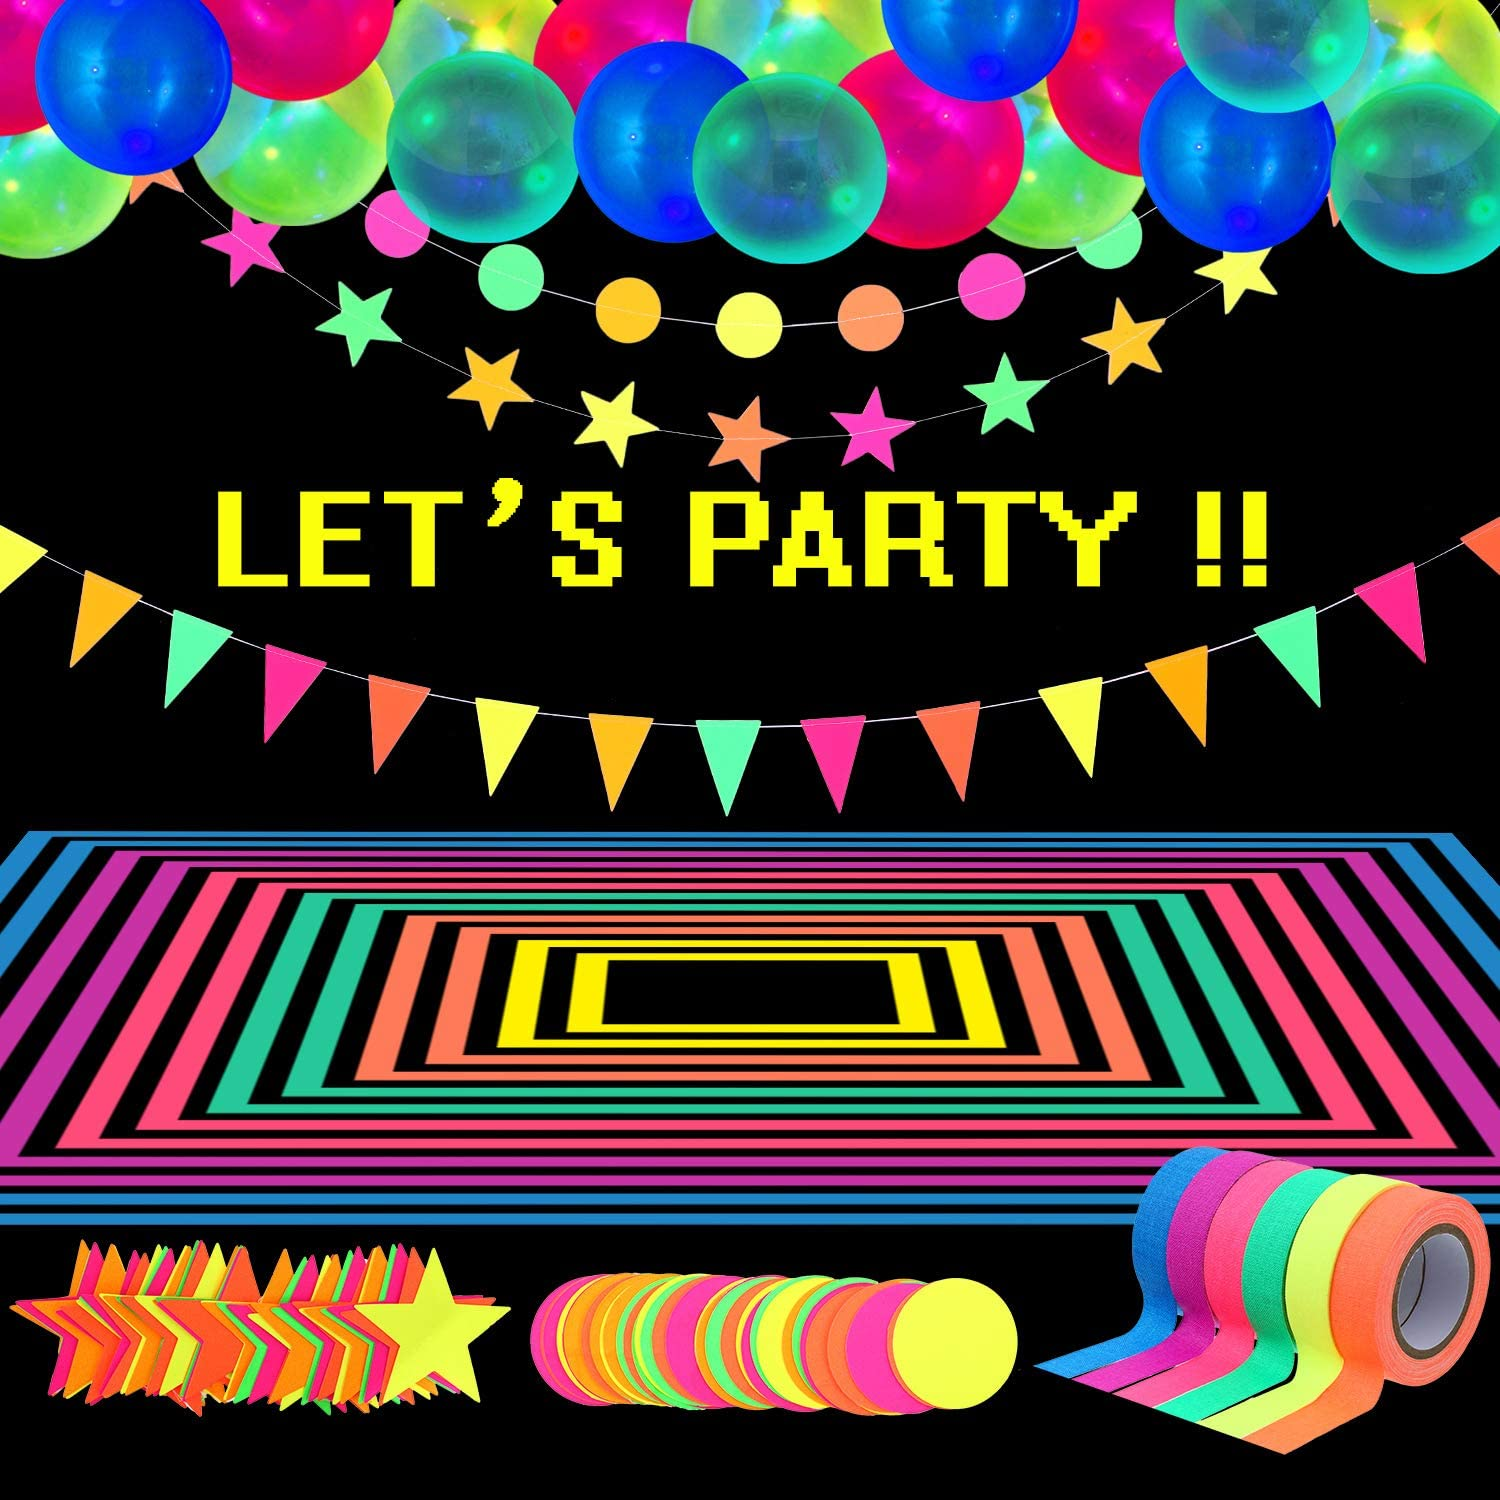 Glow Party Supplies Neon Party Supplies Set, Includes 98.4 Feet 6 Rolls UV Blacklight Reactive Tape Luminous Tape, 43.2 Feet 3 Pieces Neon Paper Garlands, 25 Pieces Neon Fluorescent Balloons